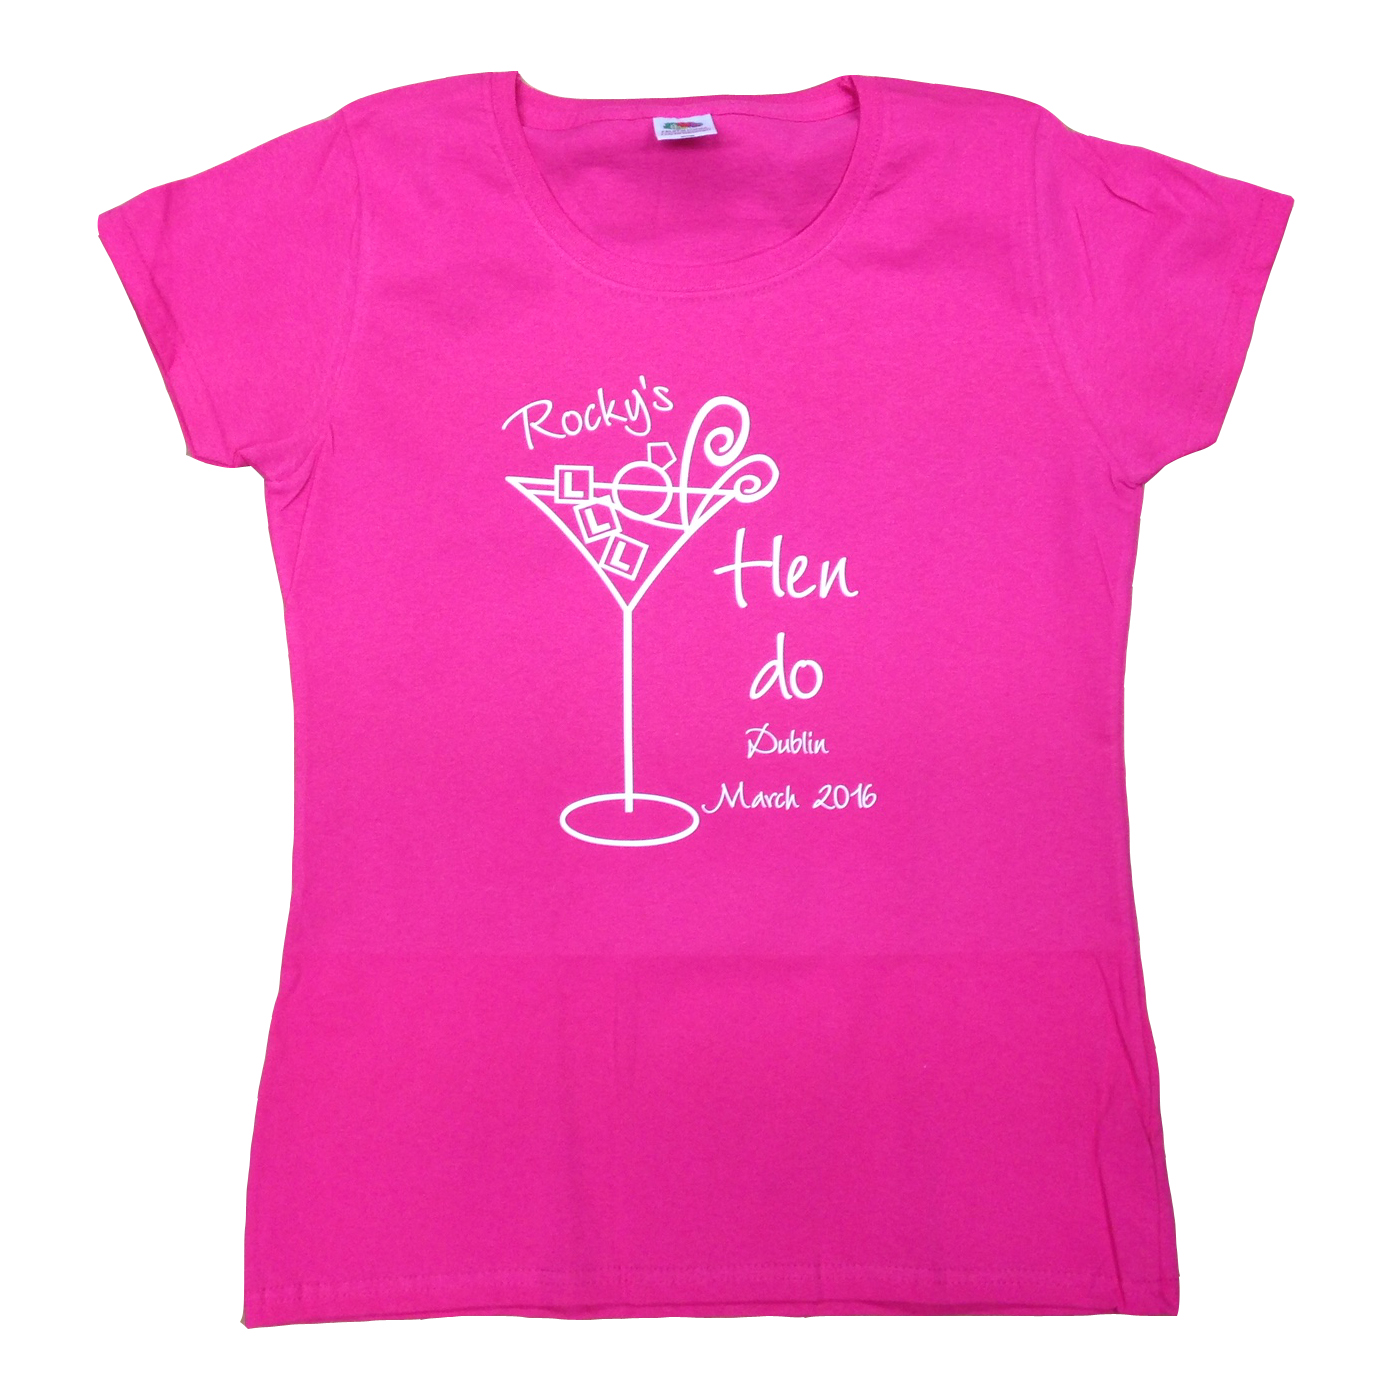 Cocktail glass t shirt hen party t shirts forever memories for Hen party t shirts